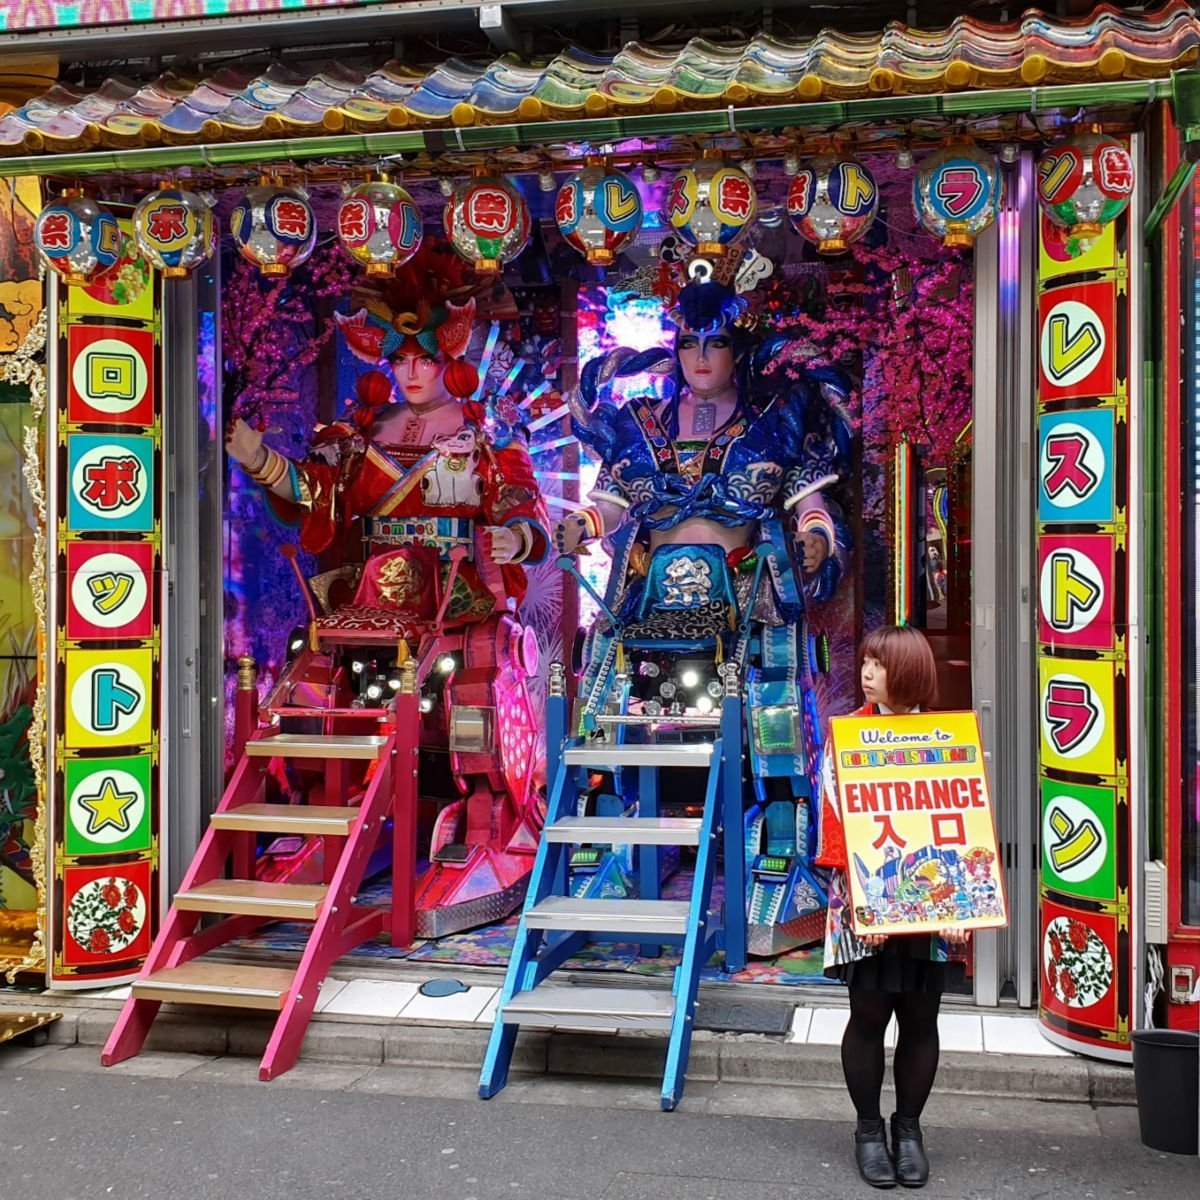 Robot Restaurant Entrance